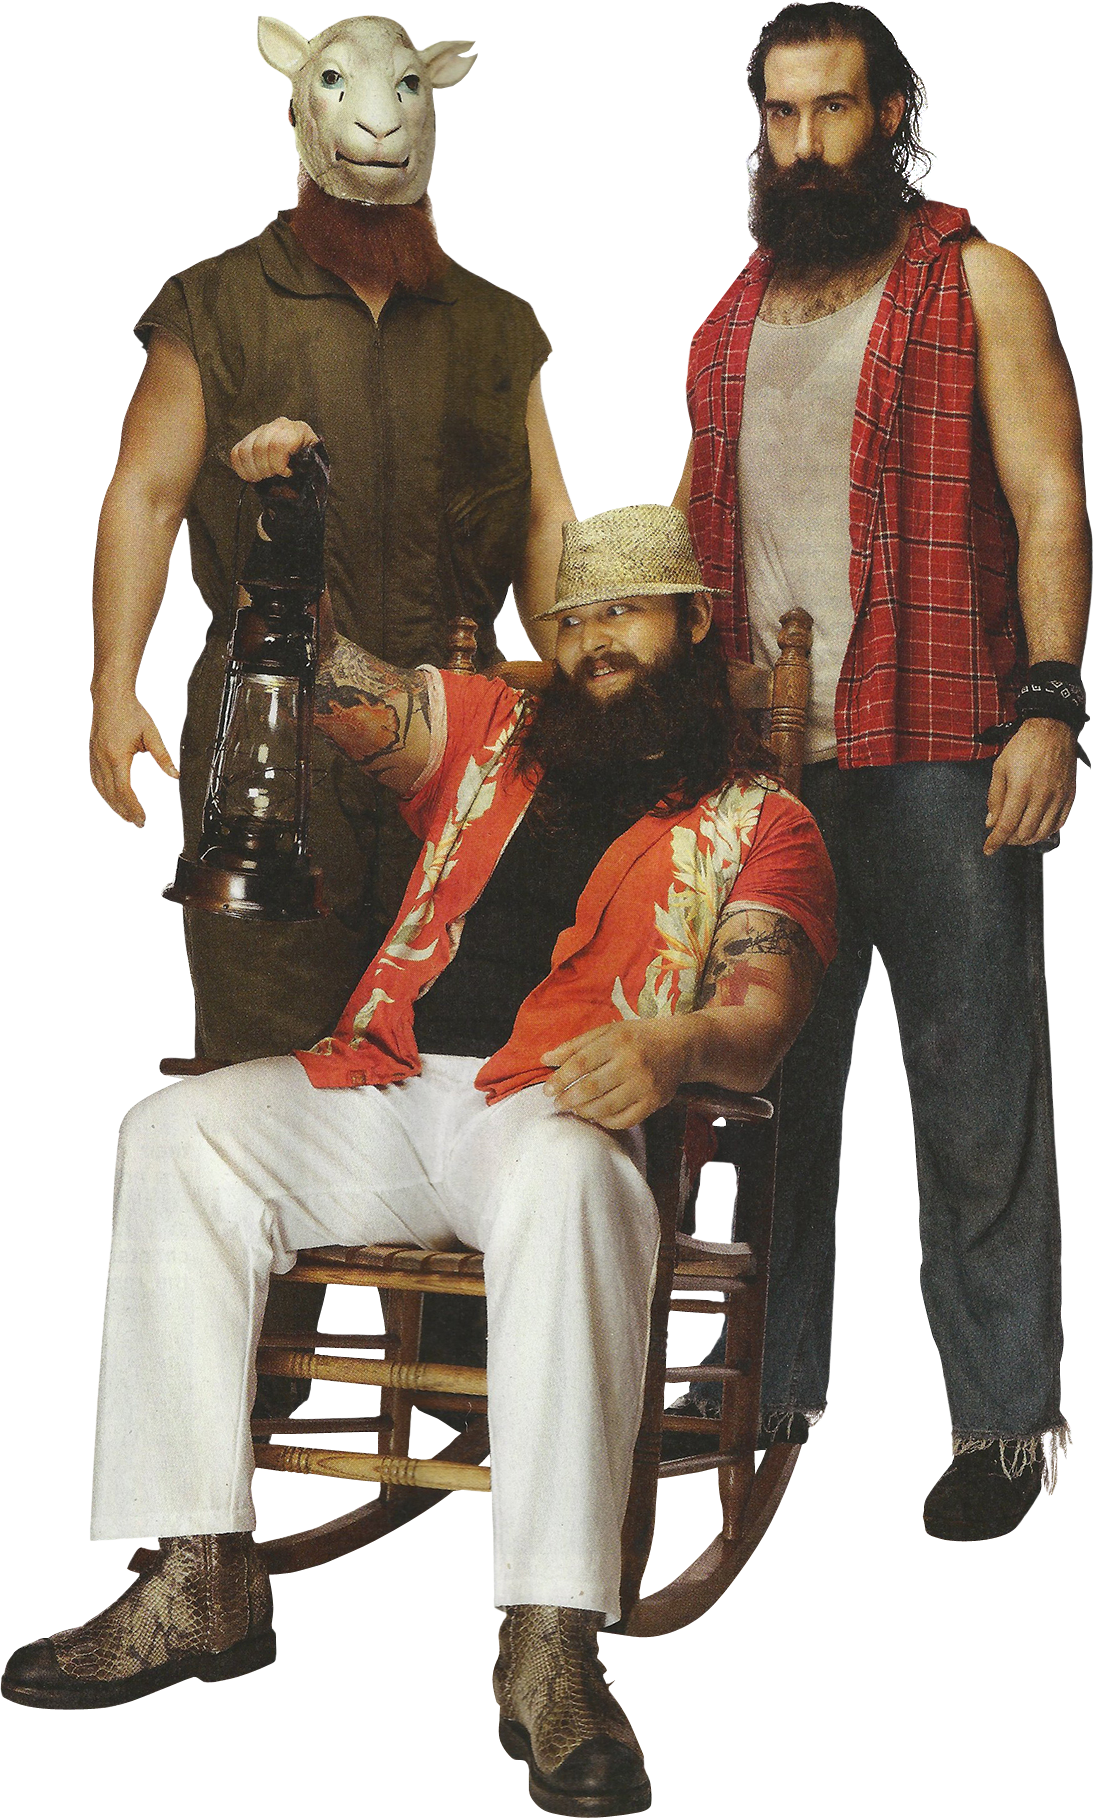 Image - The wyatt family 6.png | Pro Wrestling | FANDOM powered by Wikia - PNG Family Of 6